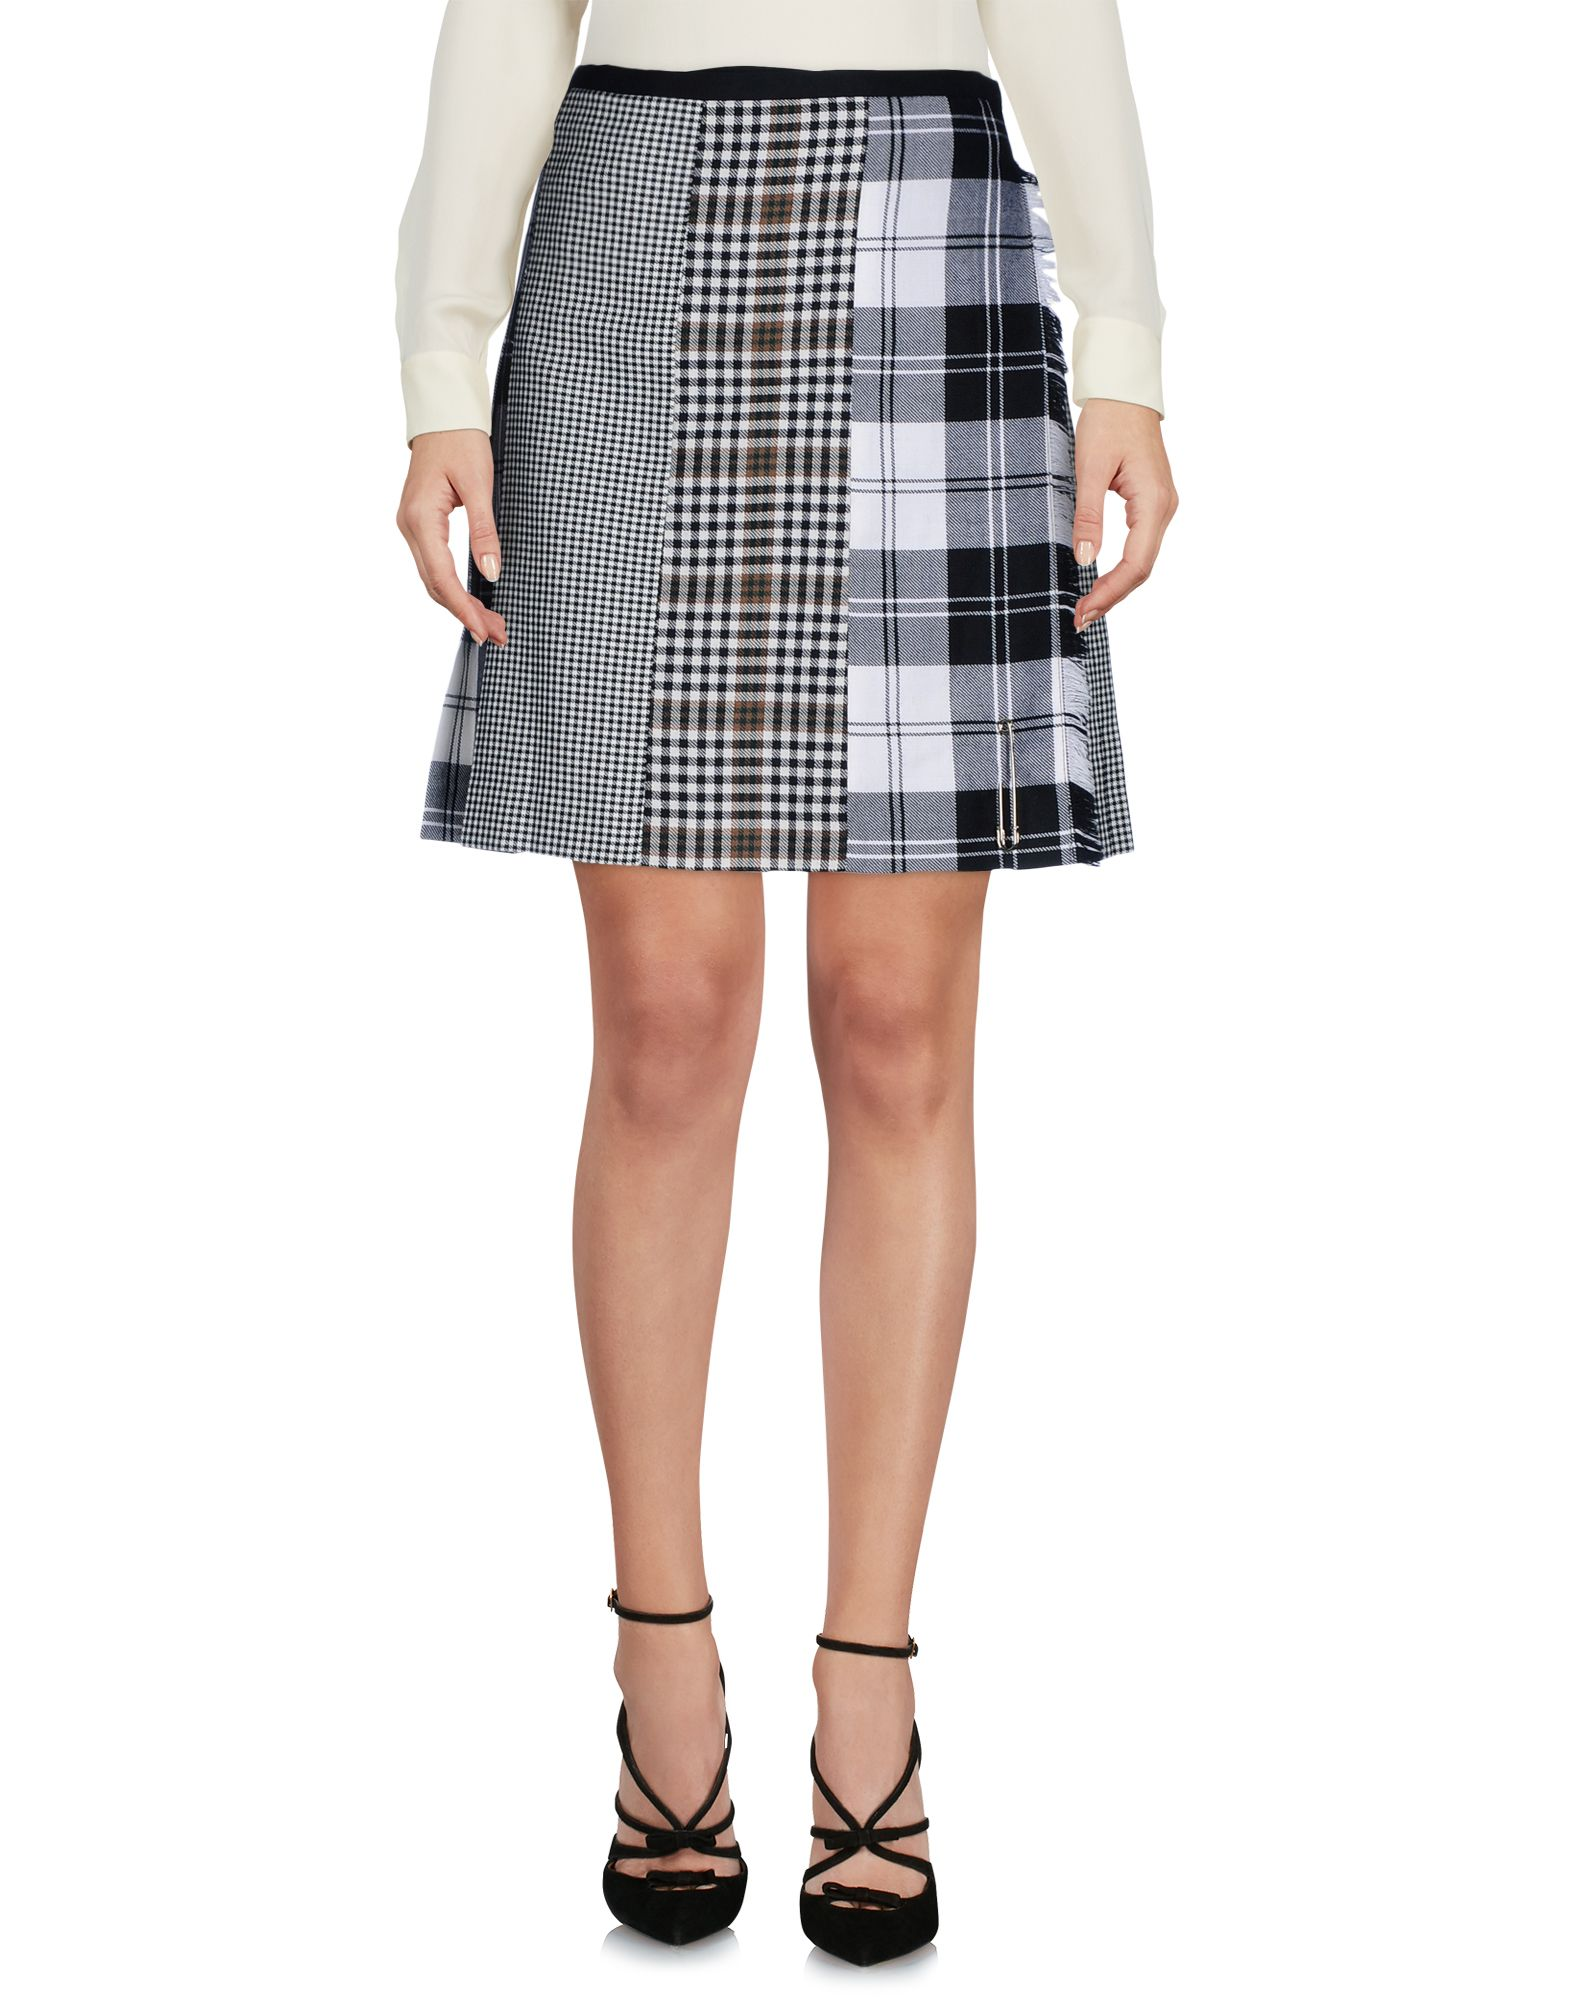 Gonna Ginocchio Le Kilt Donna - Acquista online su bnWQ23H2Z